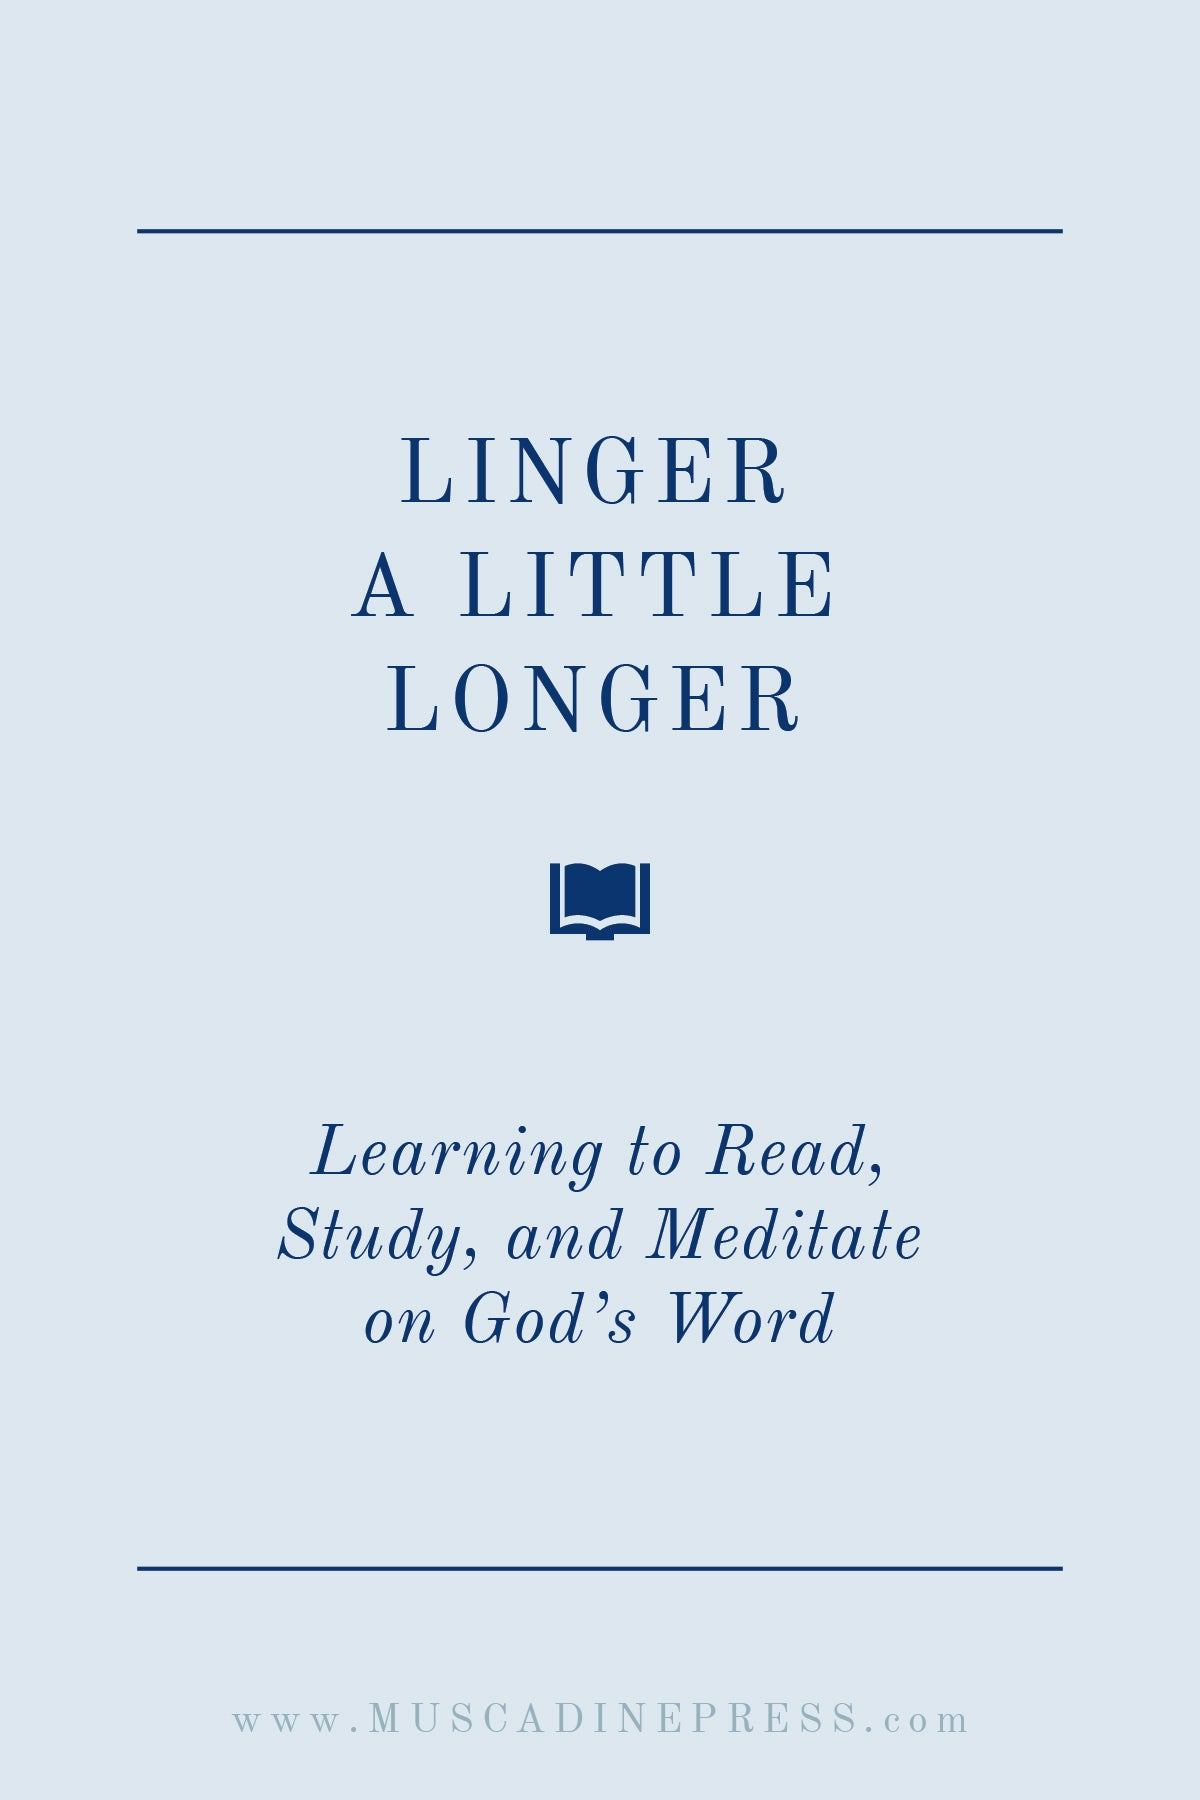 Learn to Hear God's Word through Reading, Studying, and Meditating on Scripture